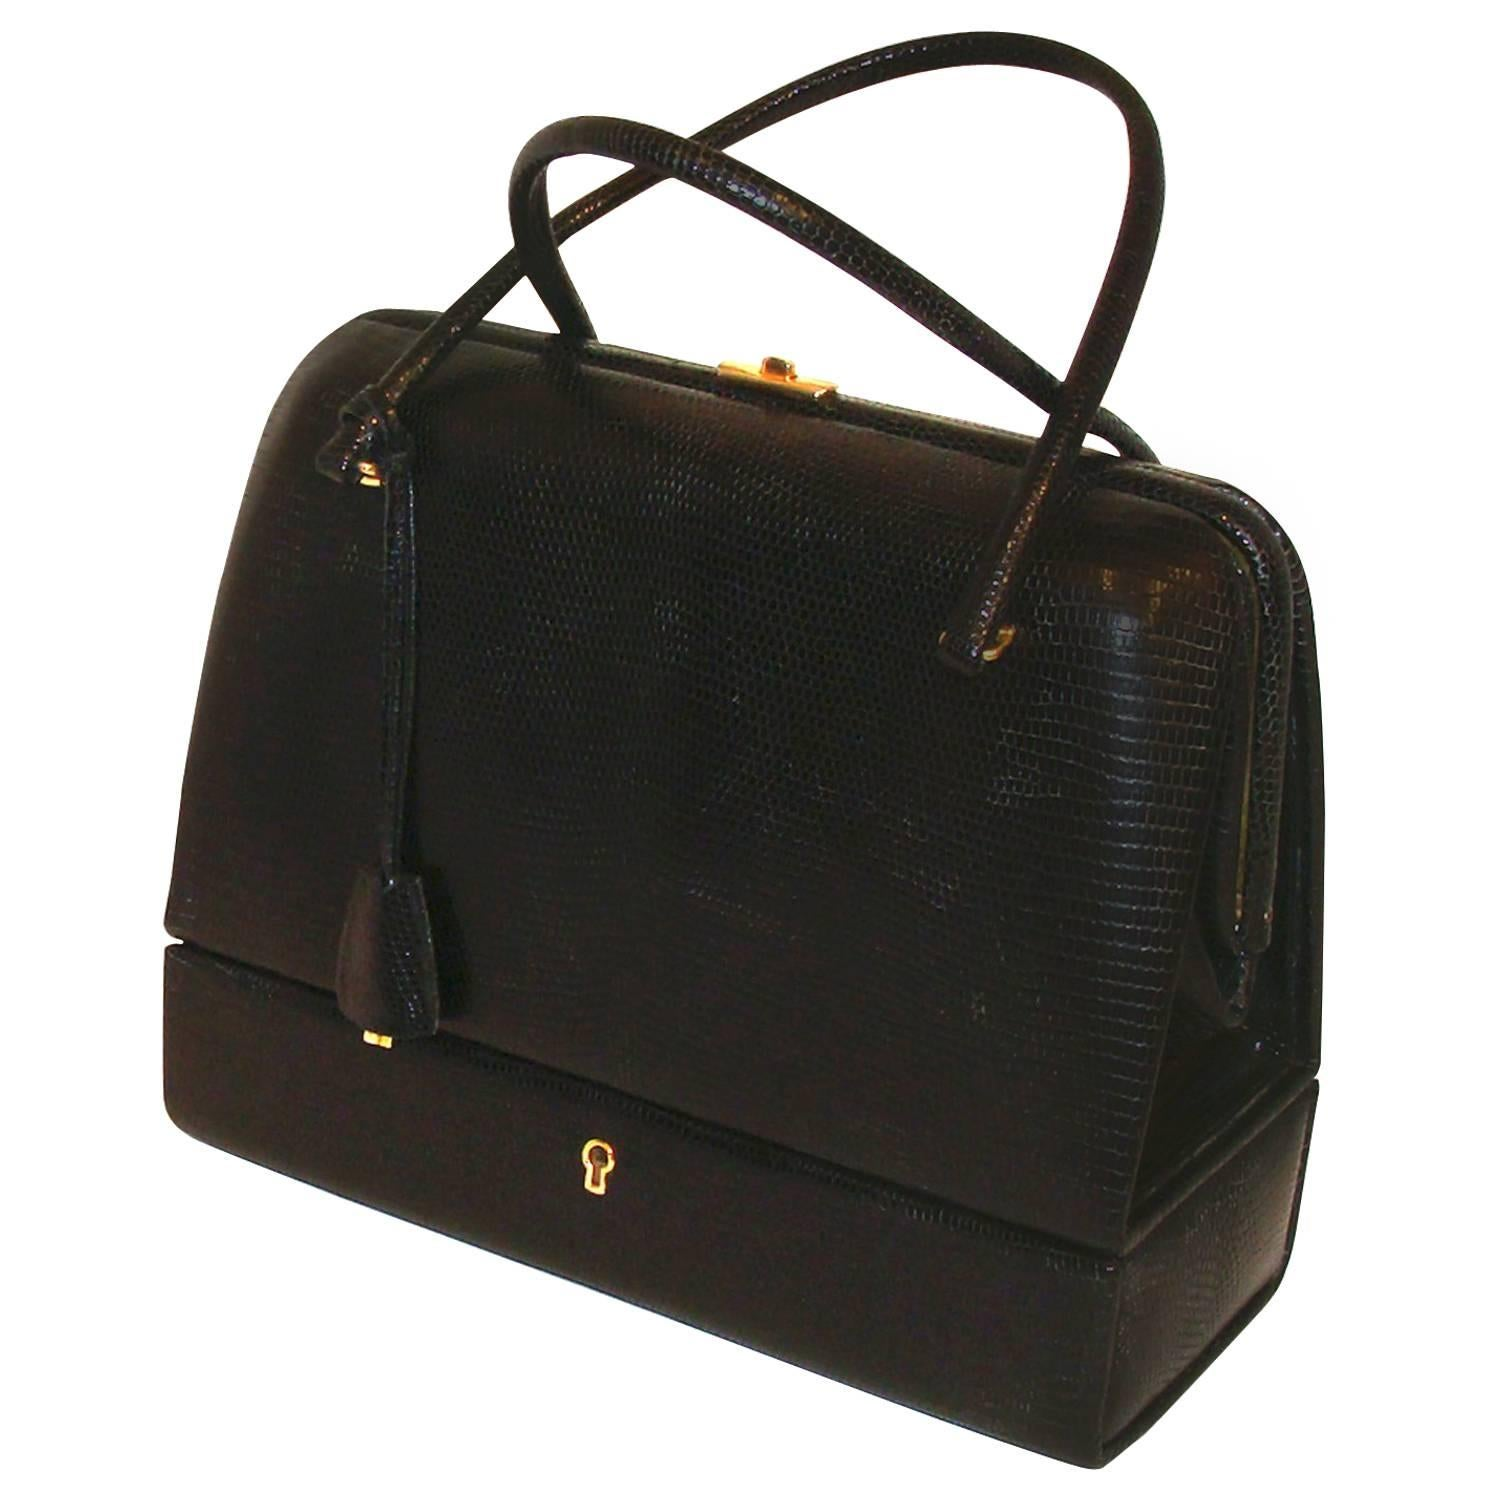 1stdibs Exquisite Black Lizard Bag With Jewelry Case (sac Mallette) With Key YVo6ImDUo